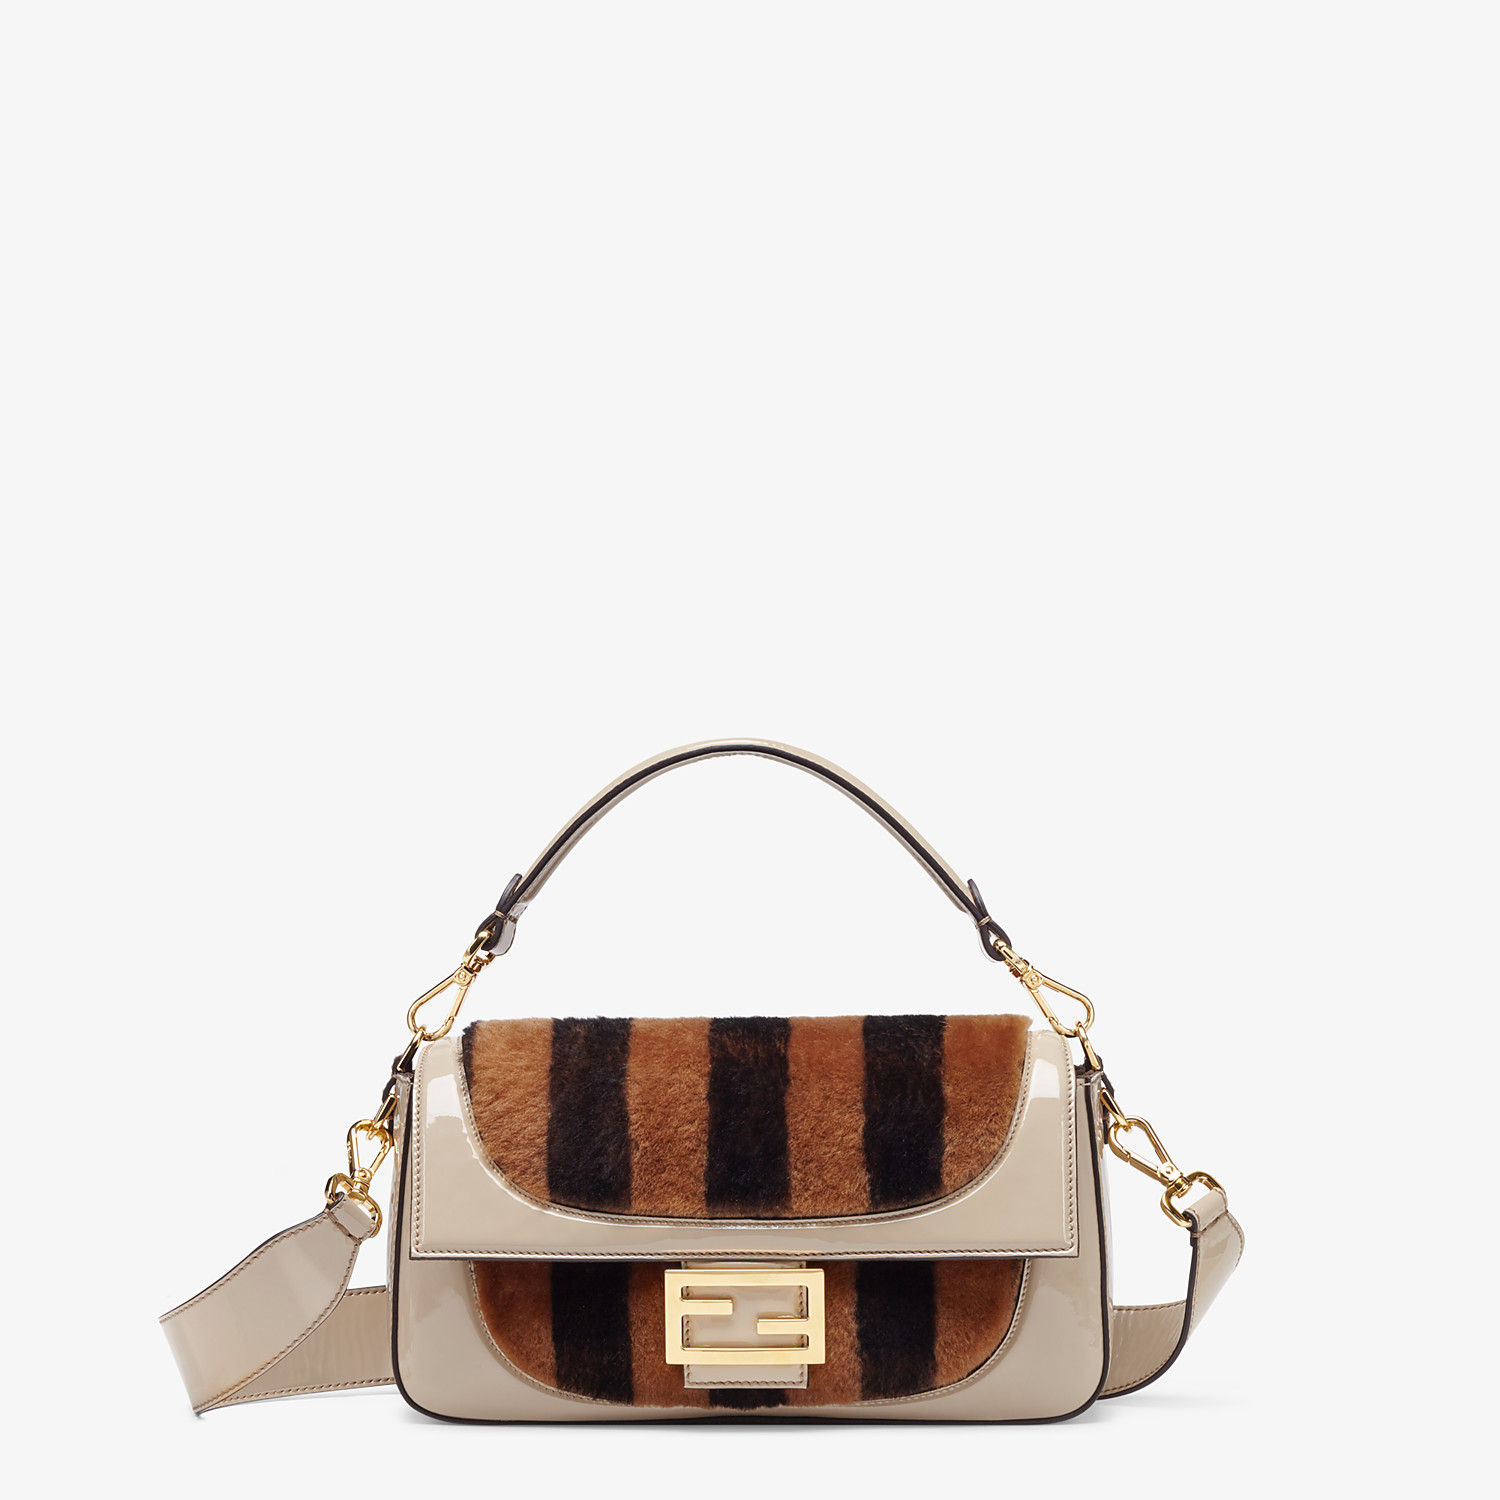 FENDI BAGUETTE - Multicolour, patent leather and sheepskin bag - view 1 detail